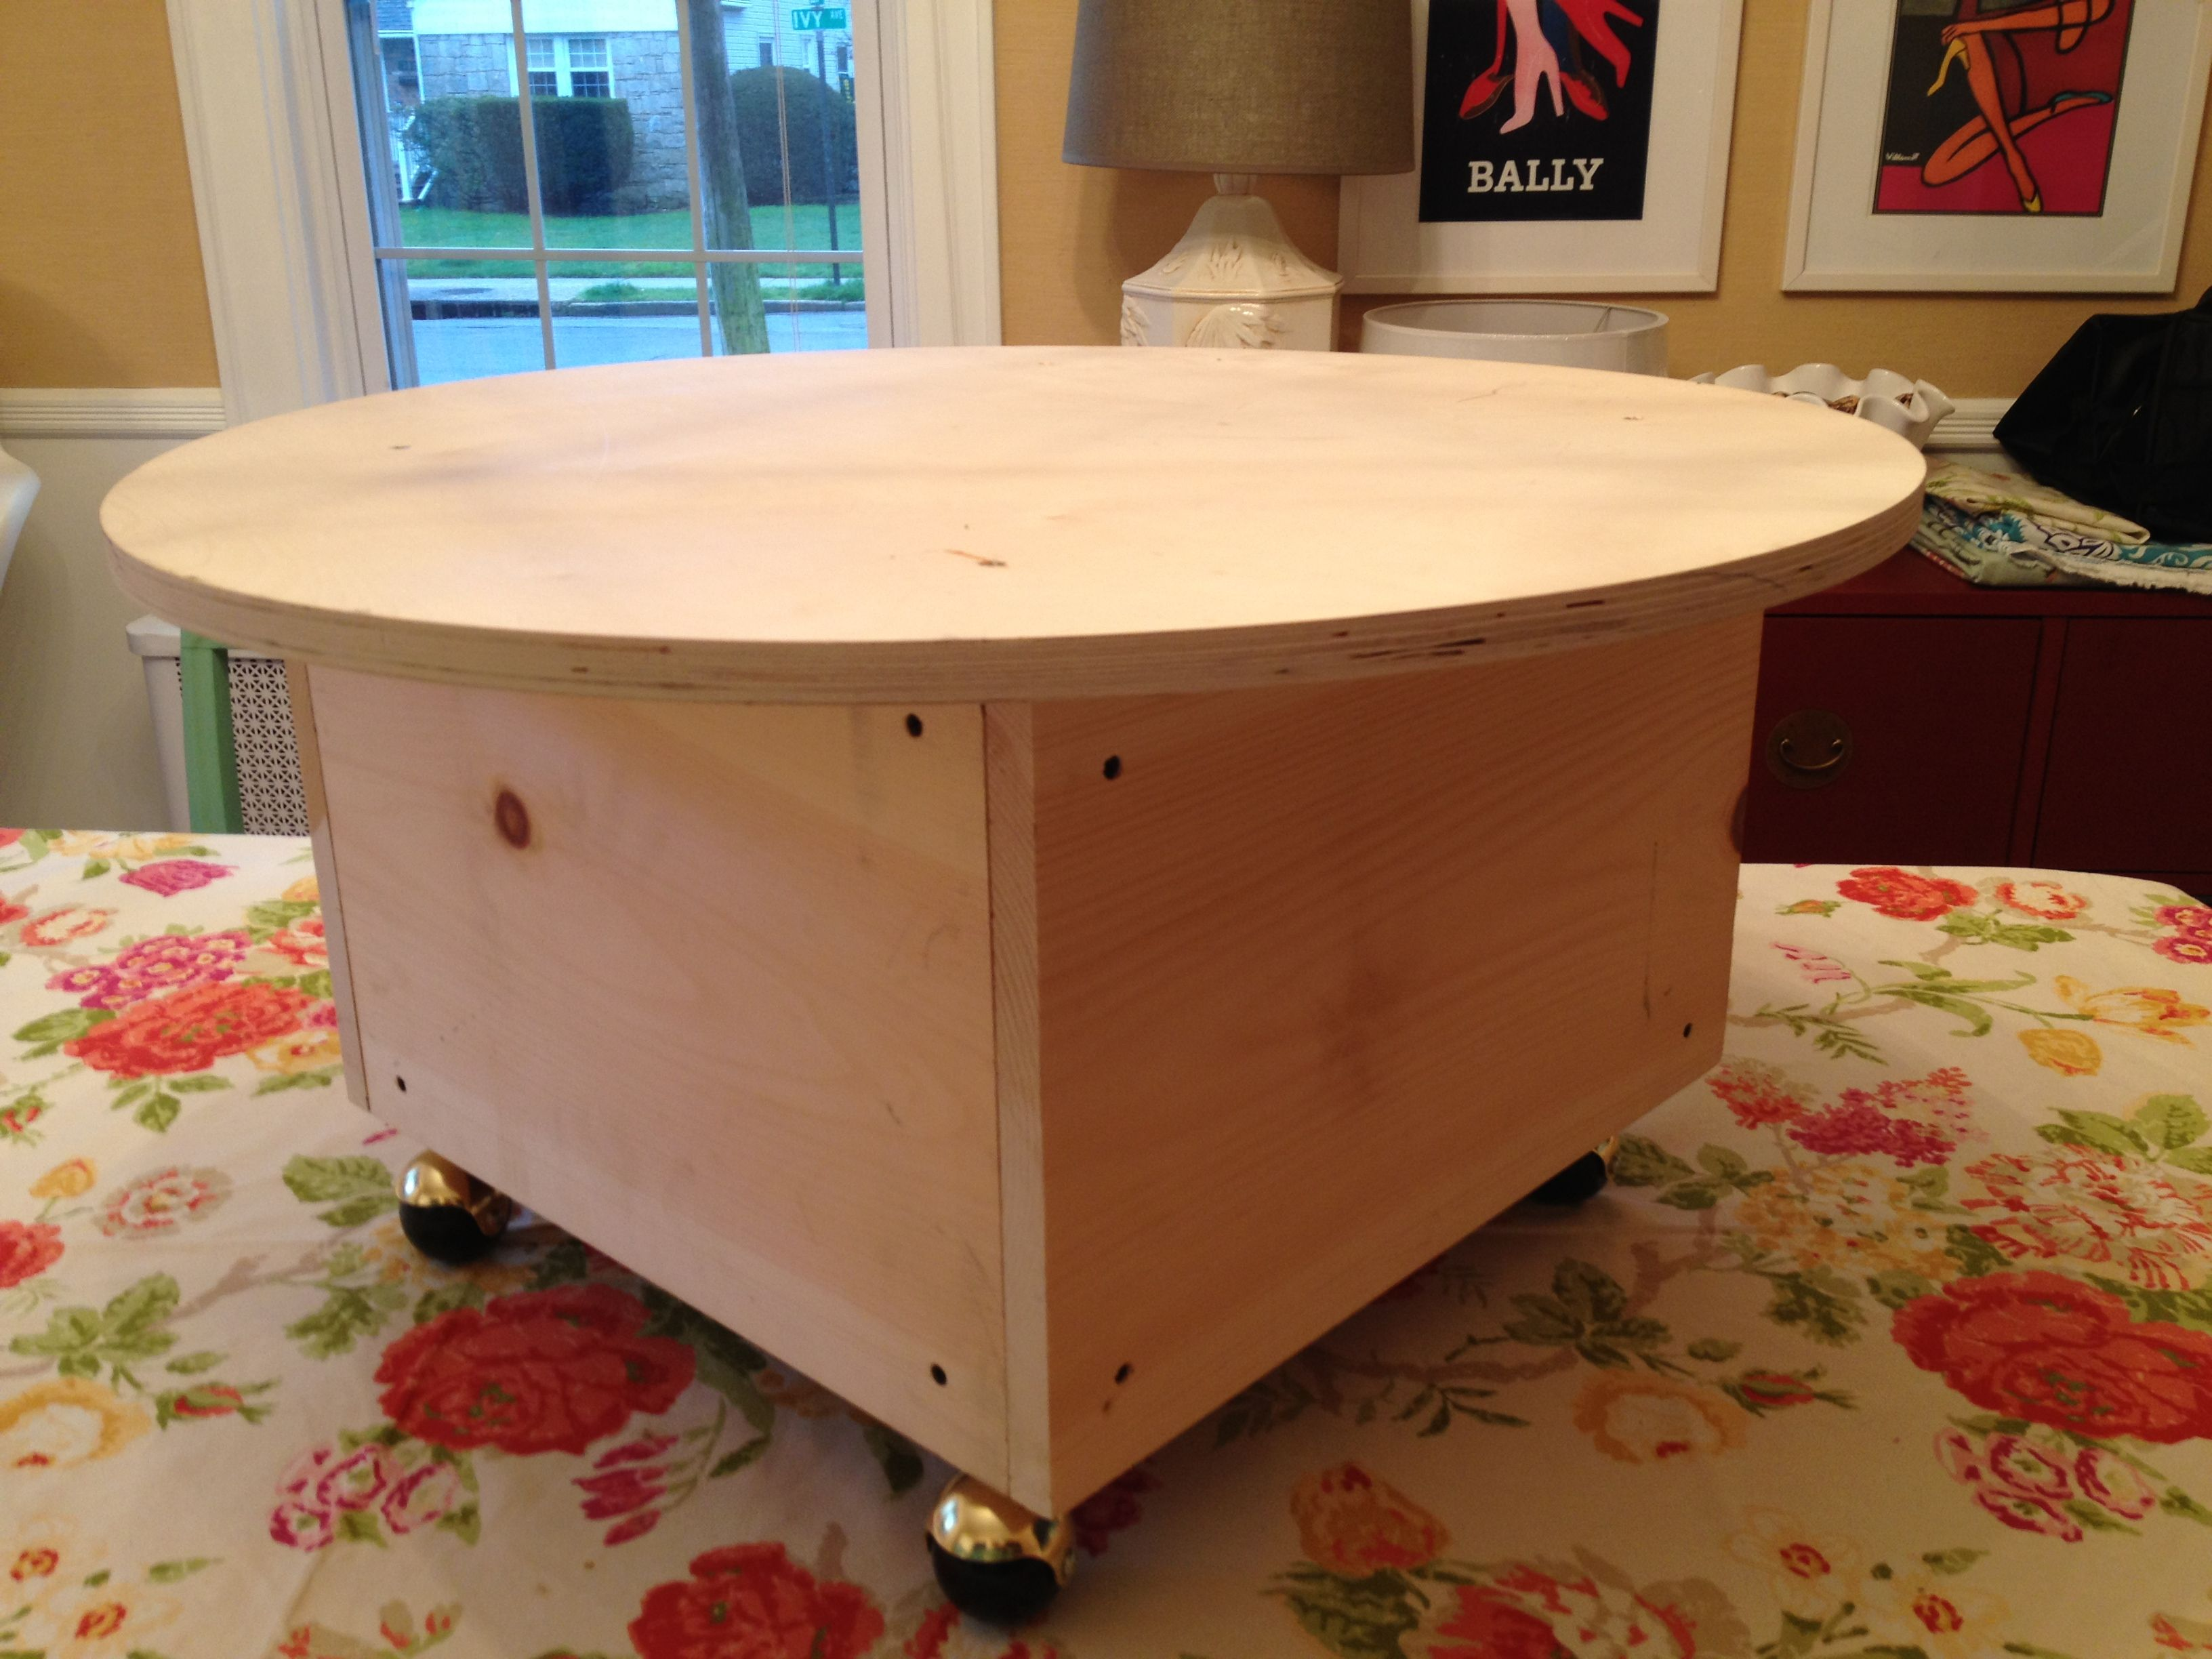 Diy ottoman diy round ottoman effortless style blog d i y for you diy coffee table ottoman these days i discovered the actual diy coffee table ottoman detailed information about diy coffee tabl geotapseo Image collections